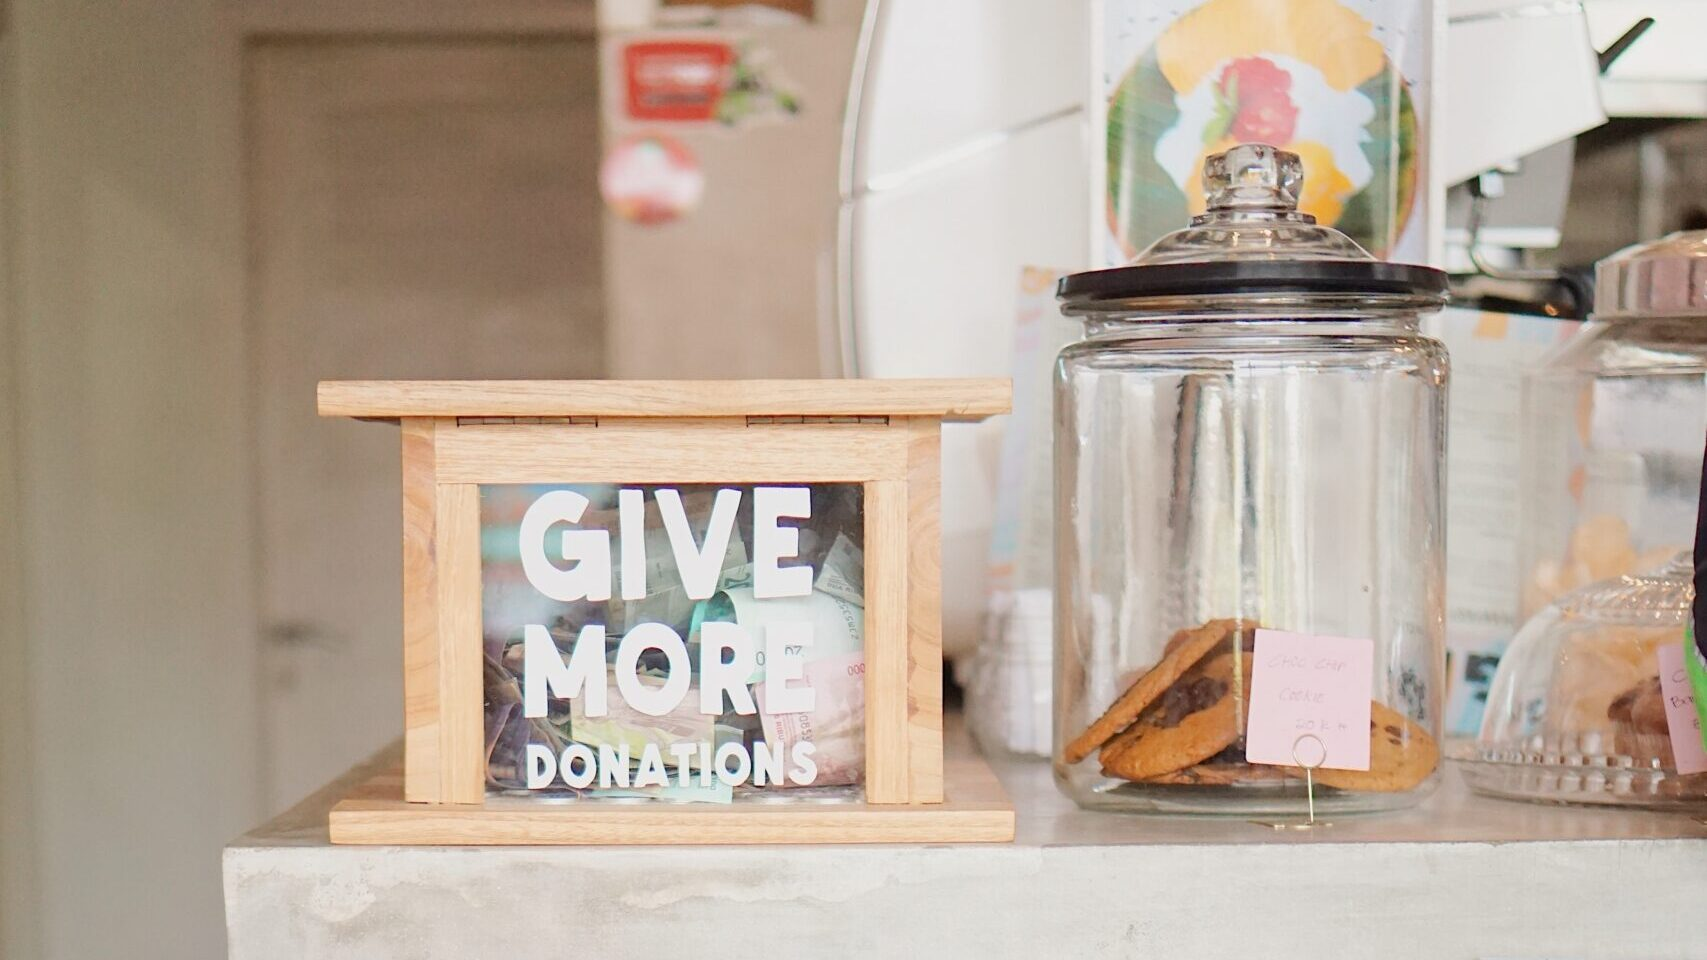 """A collection of tip jars with the message """"Give More Donations"""" written on one."""